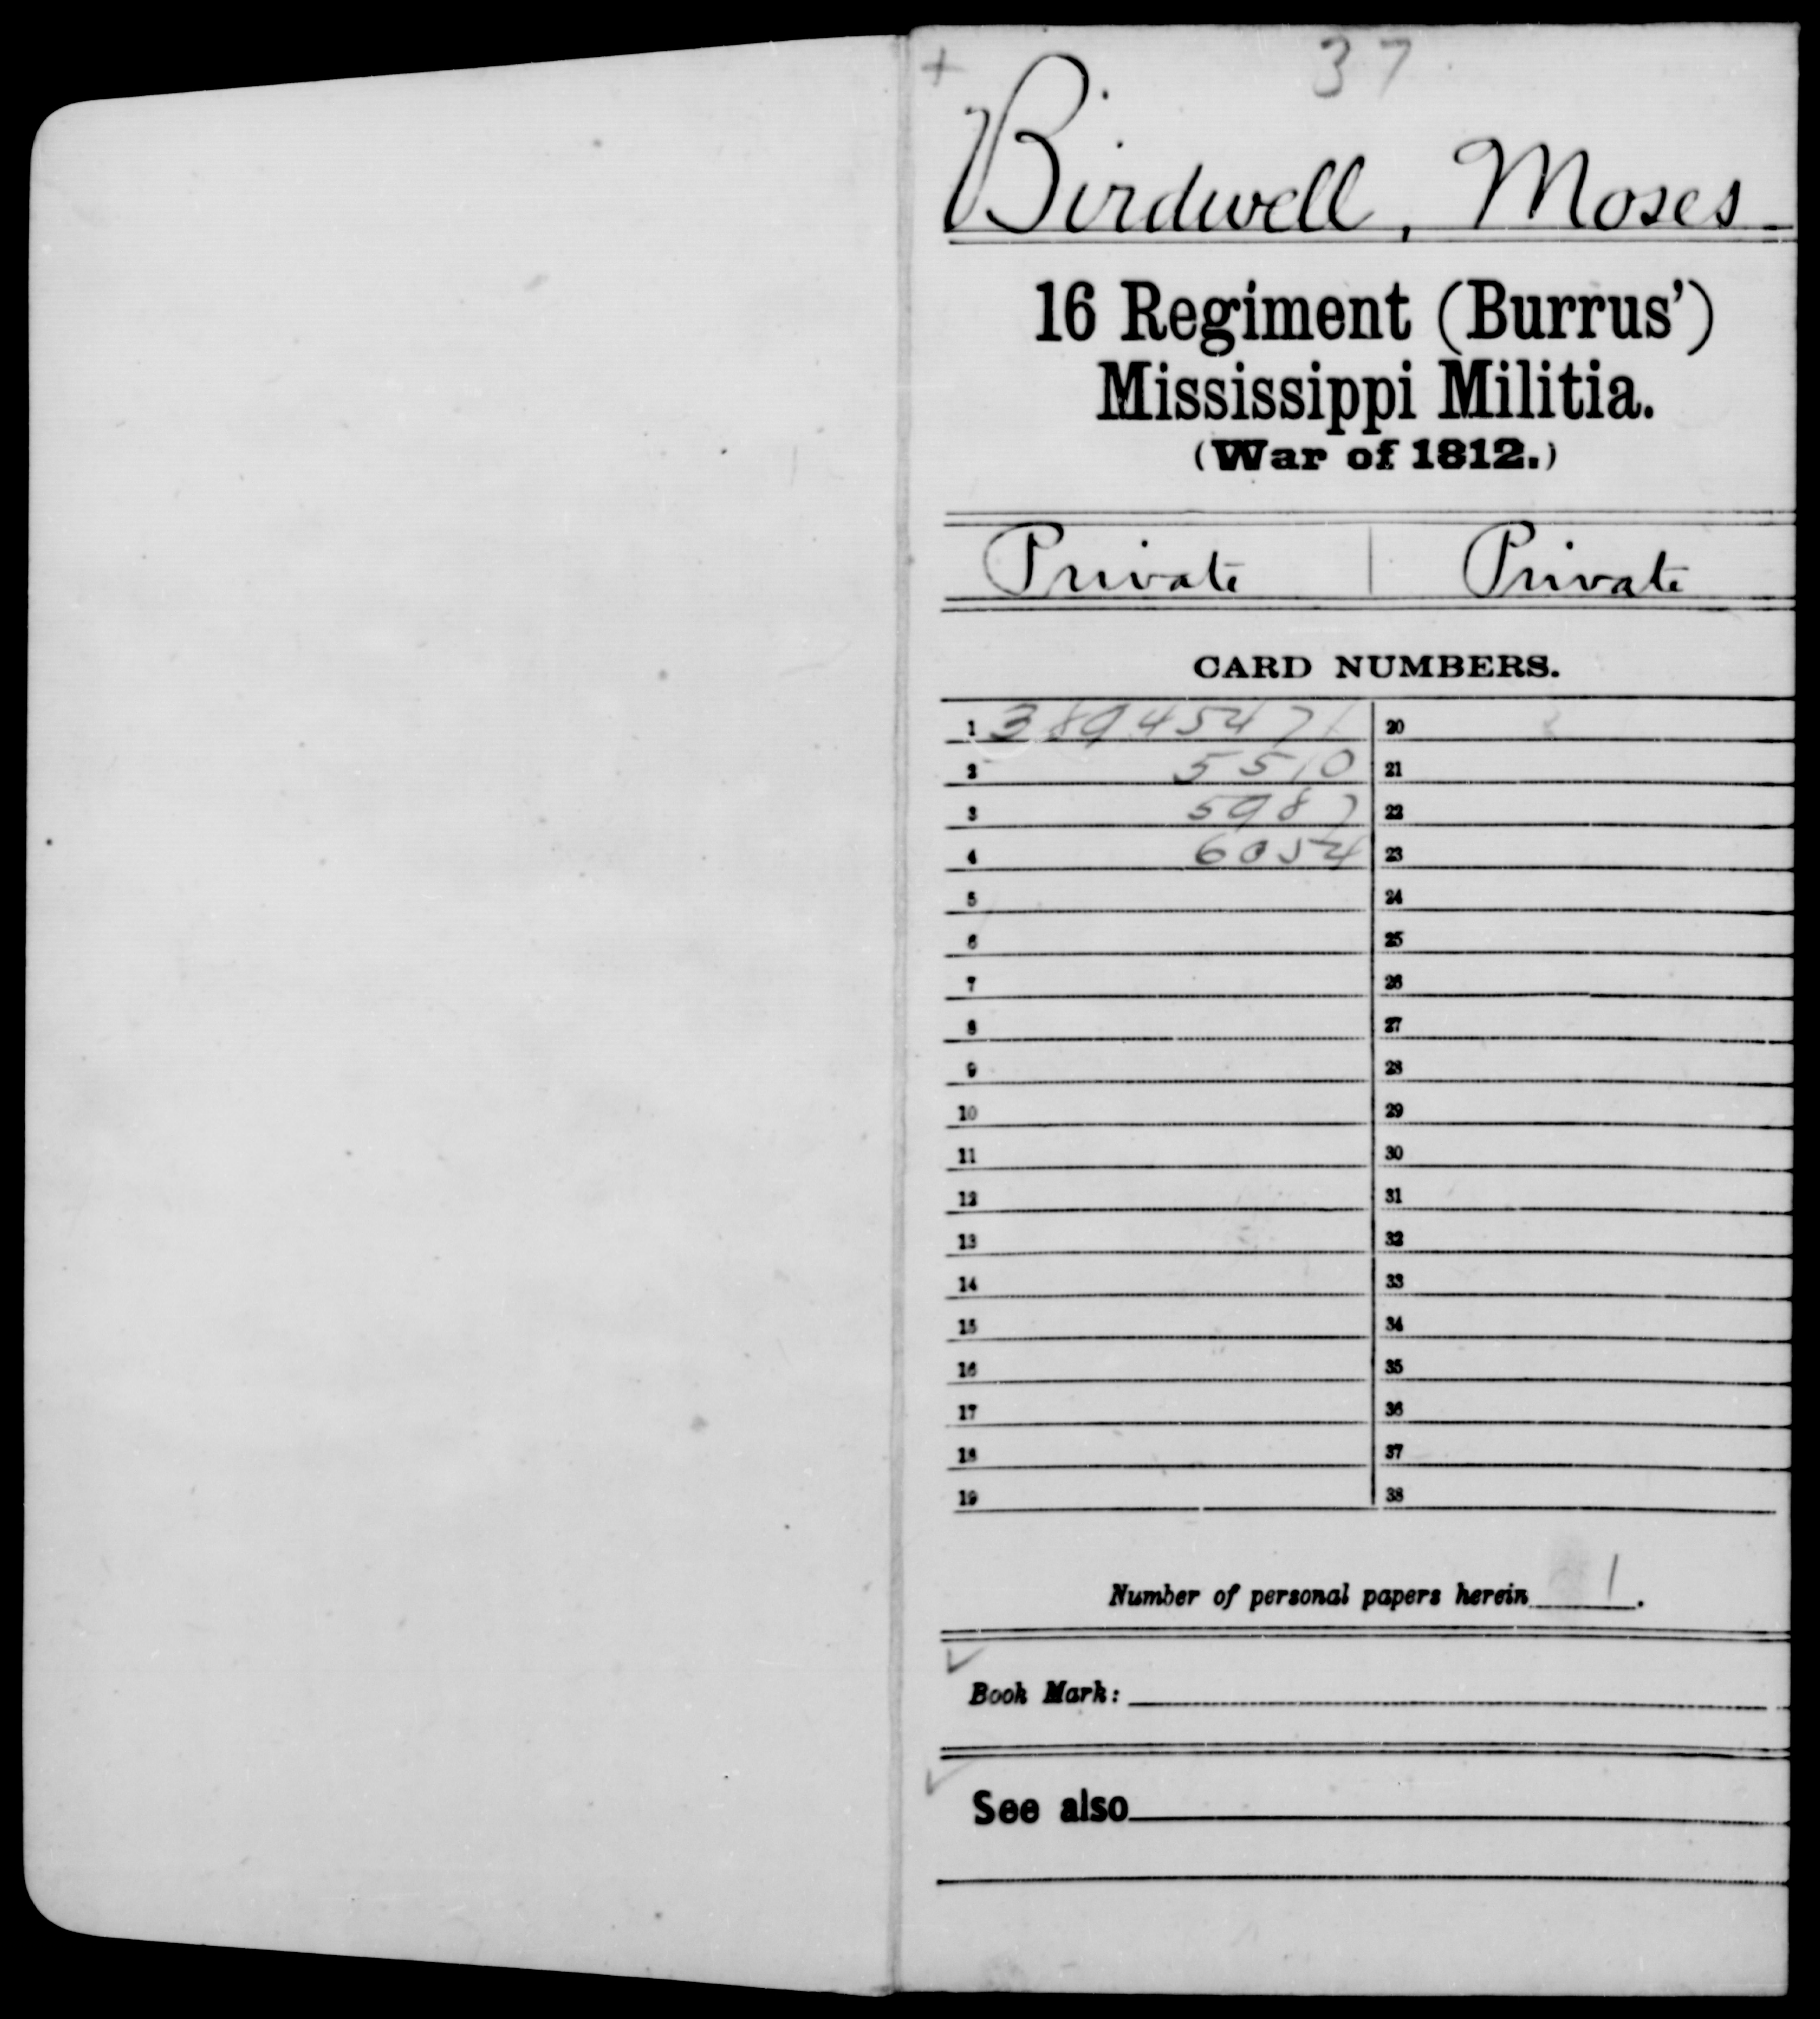 Compiled Military Service Record of Moses Birdwell, Sixteenth Regiment (Burrus'), Mississippi Militia, 1813